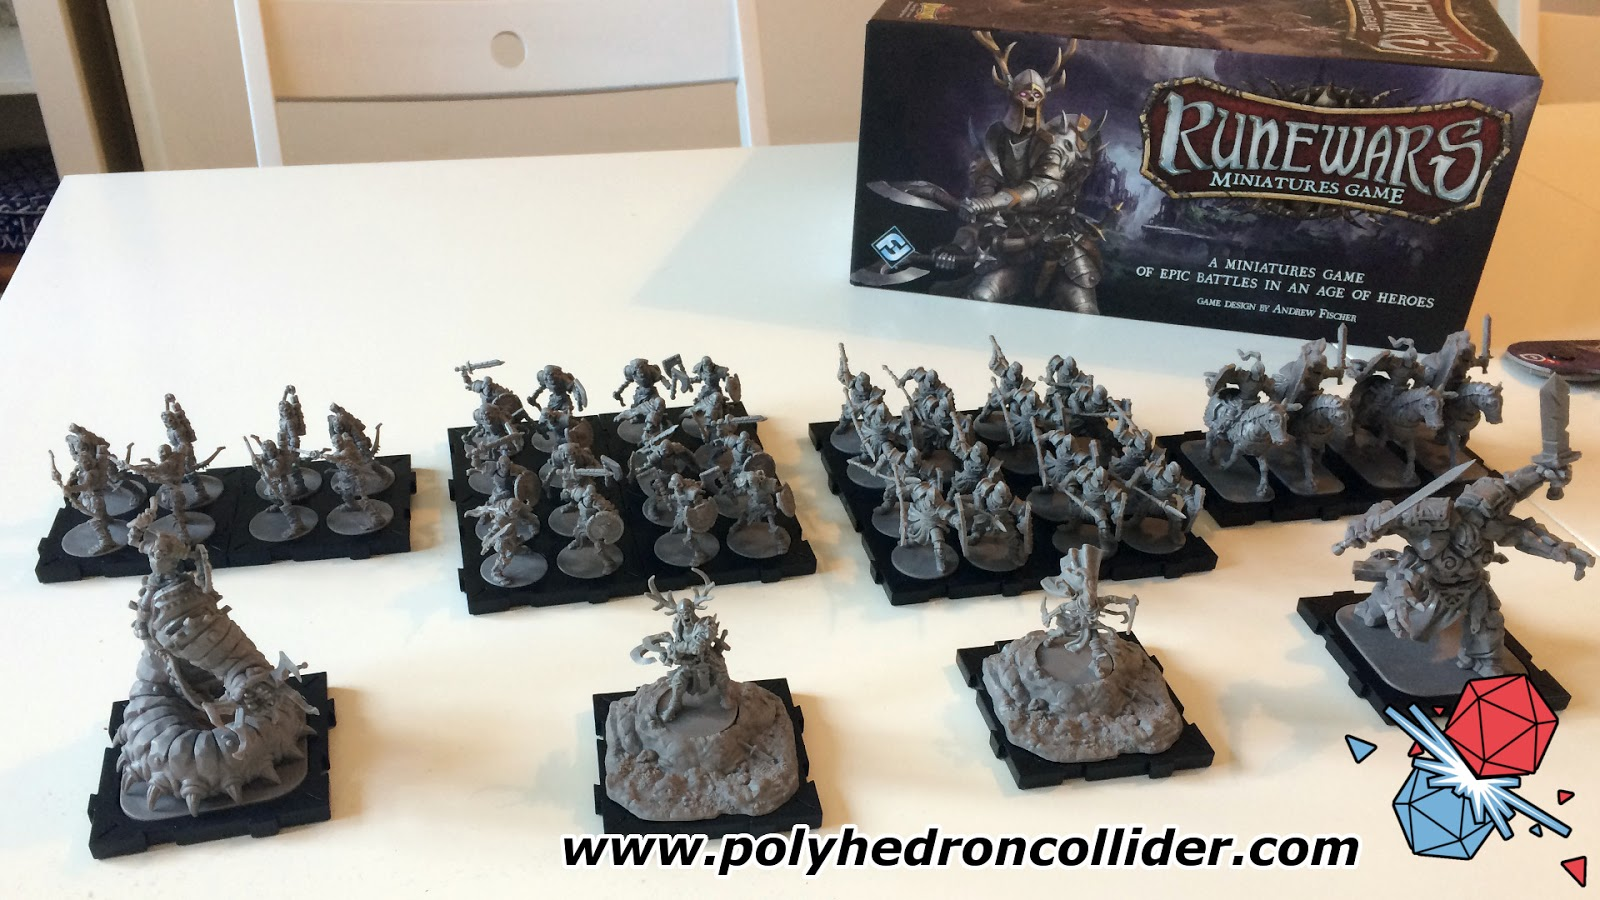 Runewars Miniatures Game Review | Polyhedron Collider